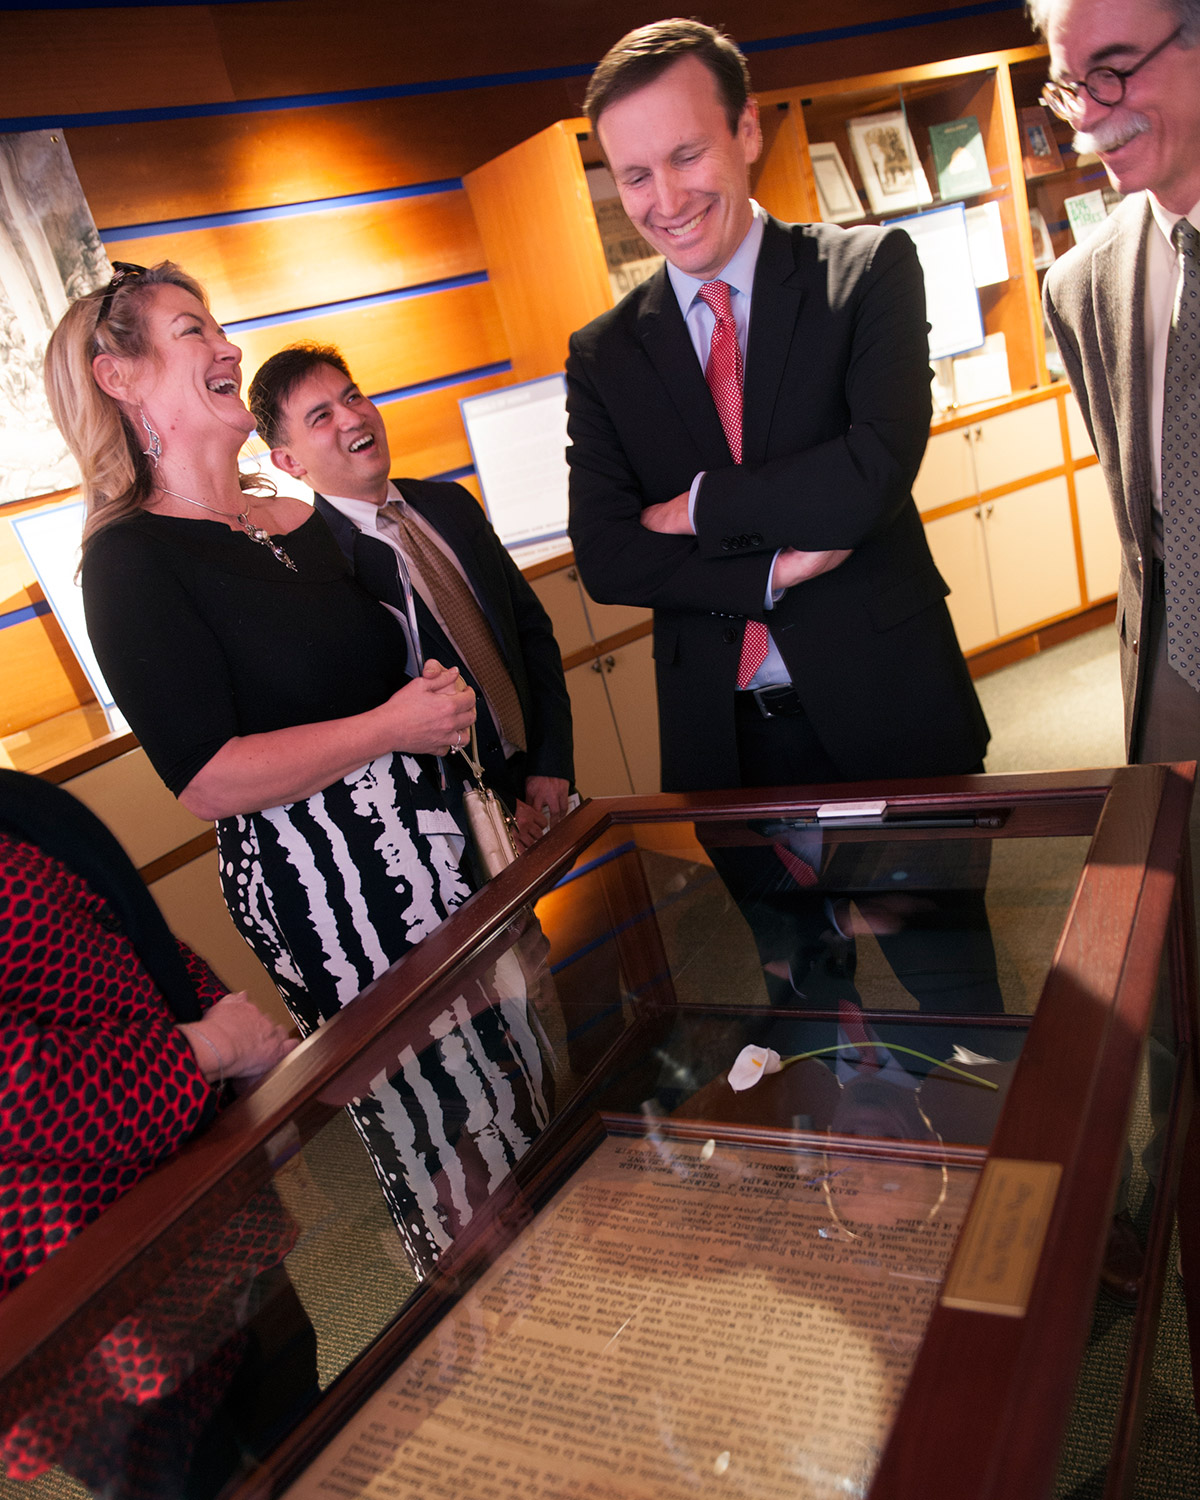 U.S. Senator Chris Murphy views an exhibition in the Lender Family Special Collection Room on the Mount Carmel Campus